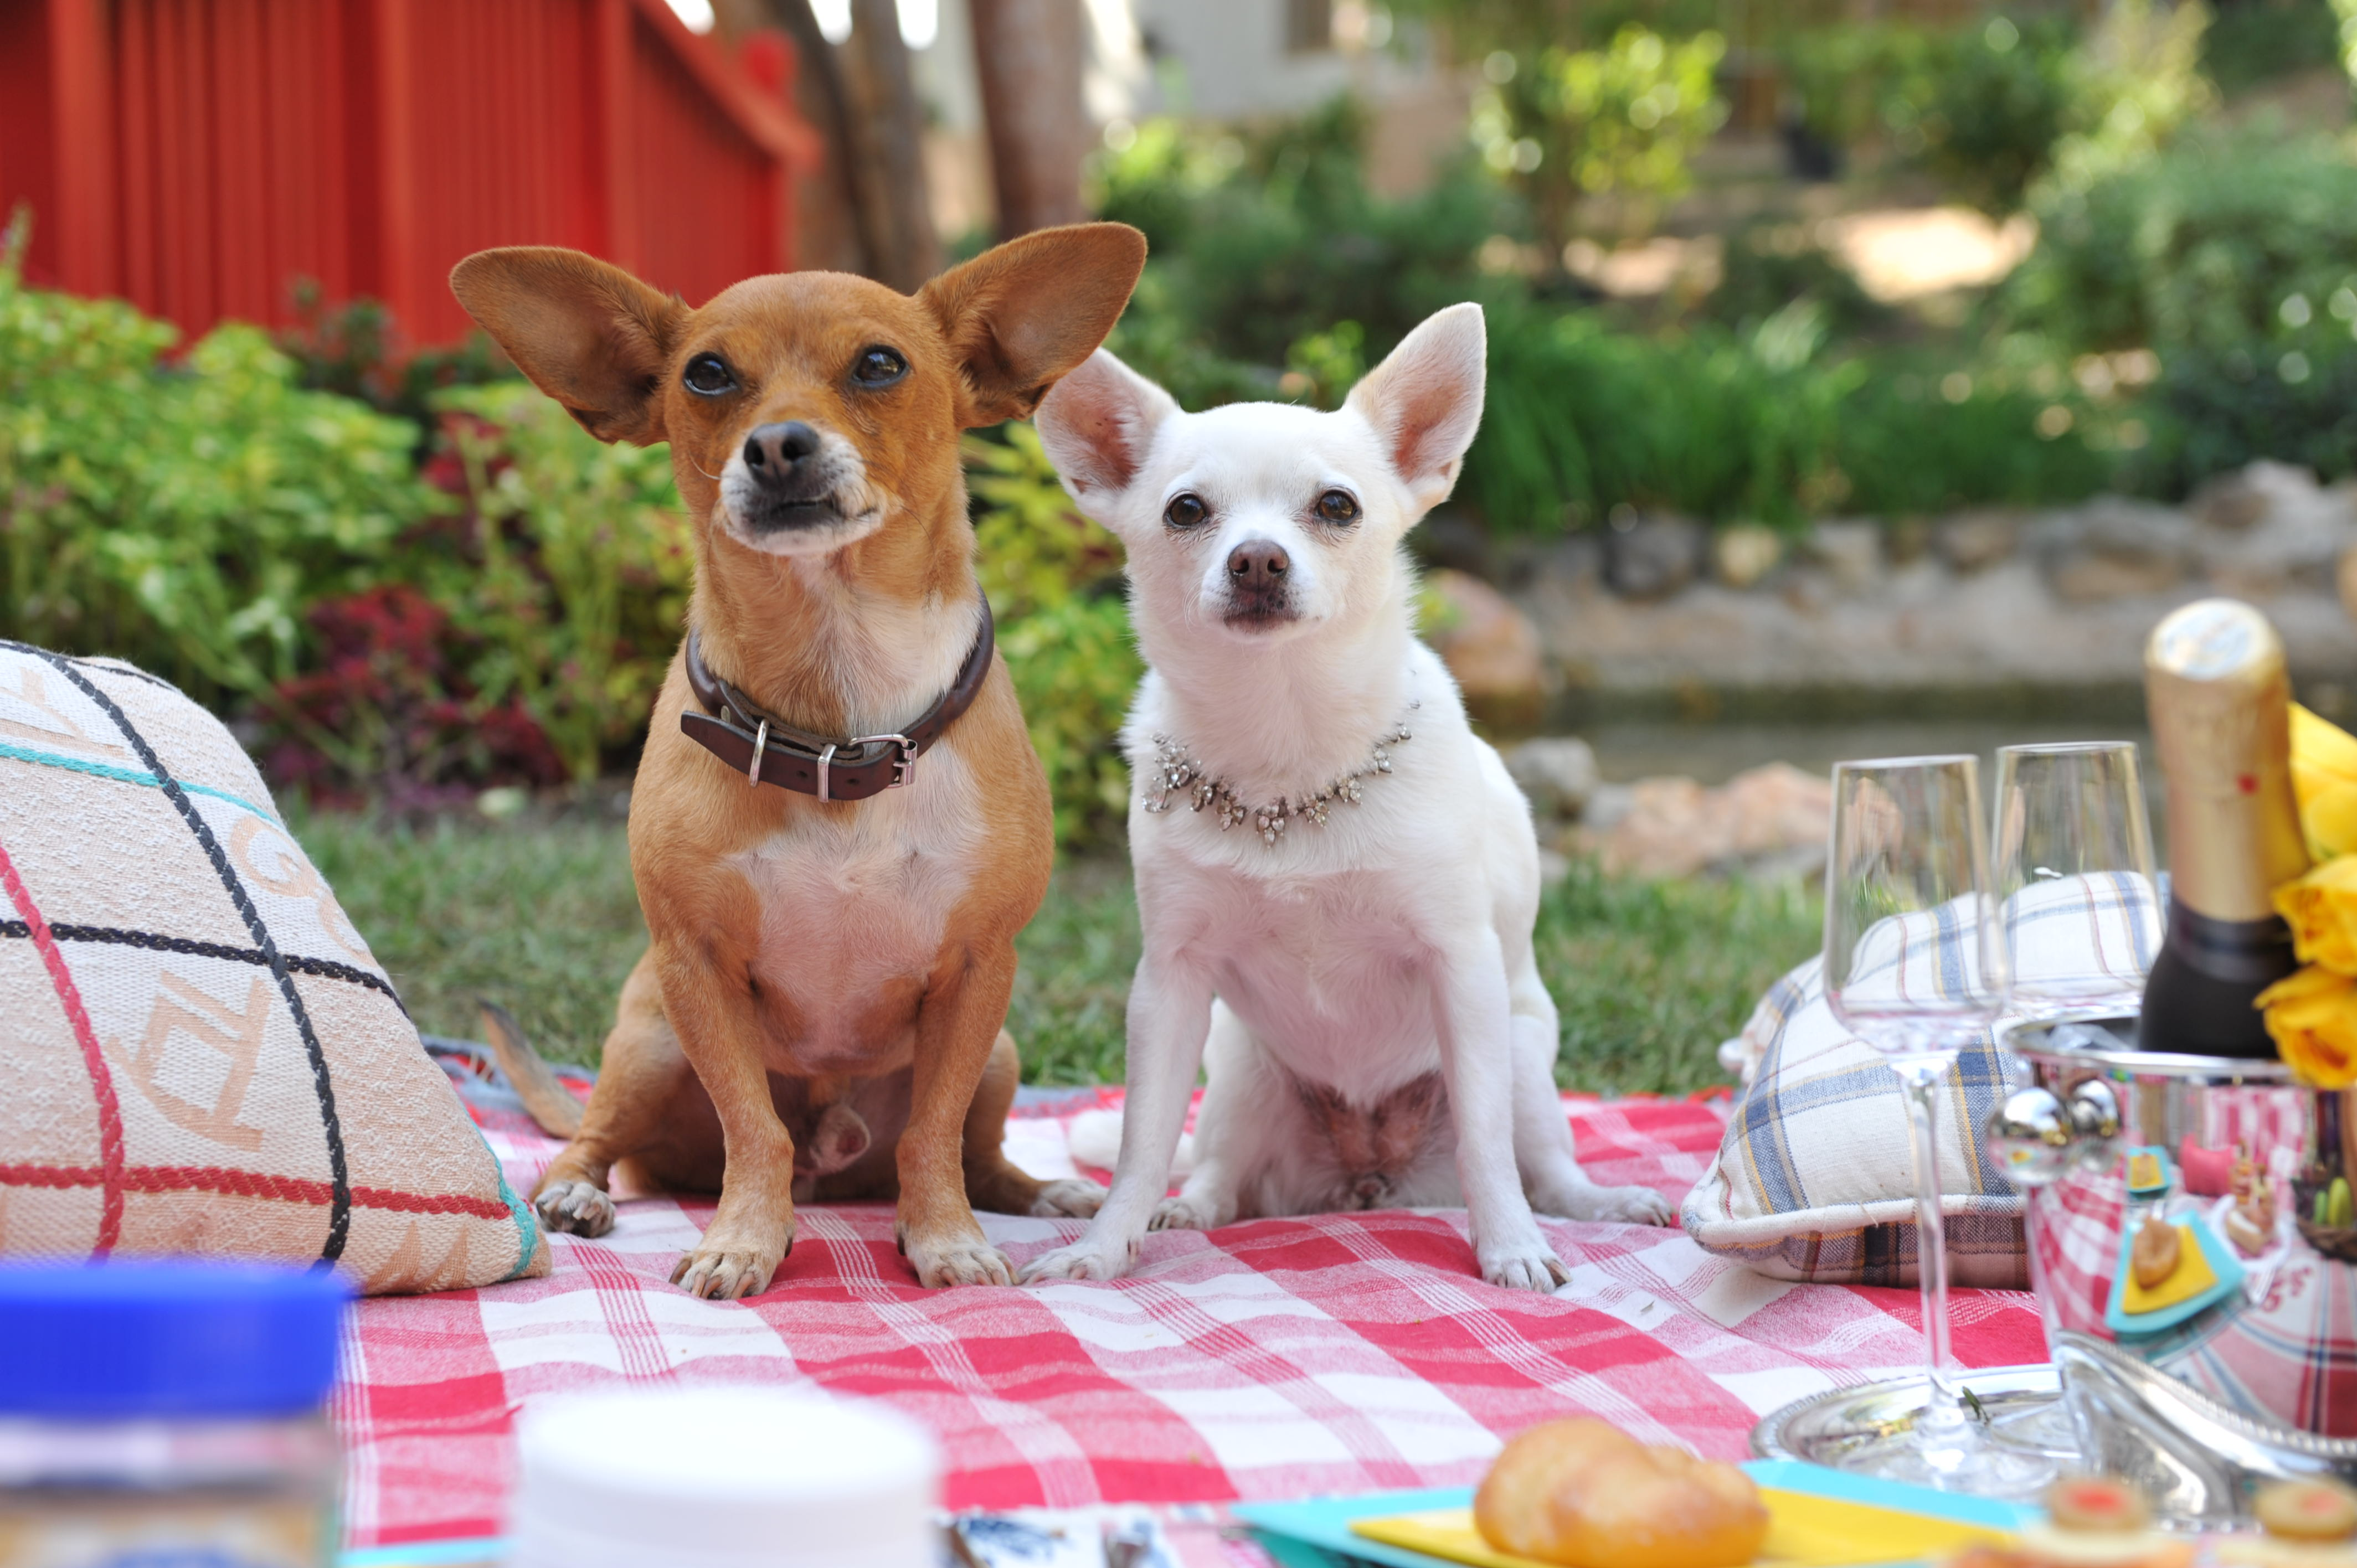 Beverly Hills Chihuahua Backgrounds, Compatible - PC, Mobile, Gadgets| 4256x2832 px